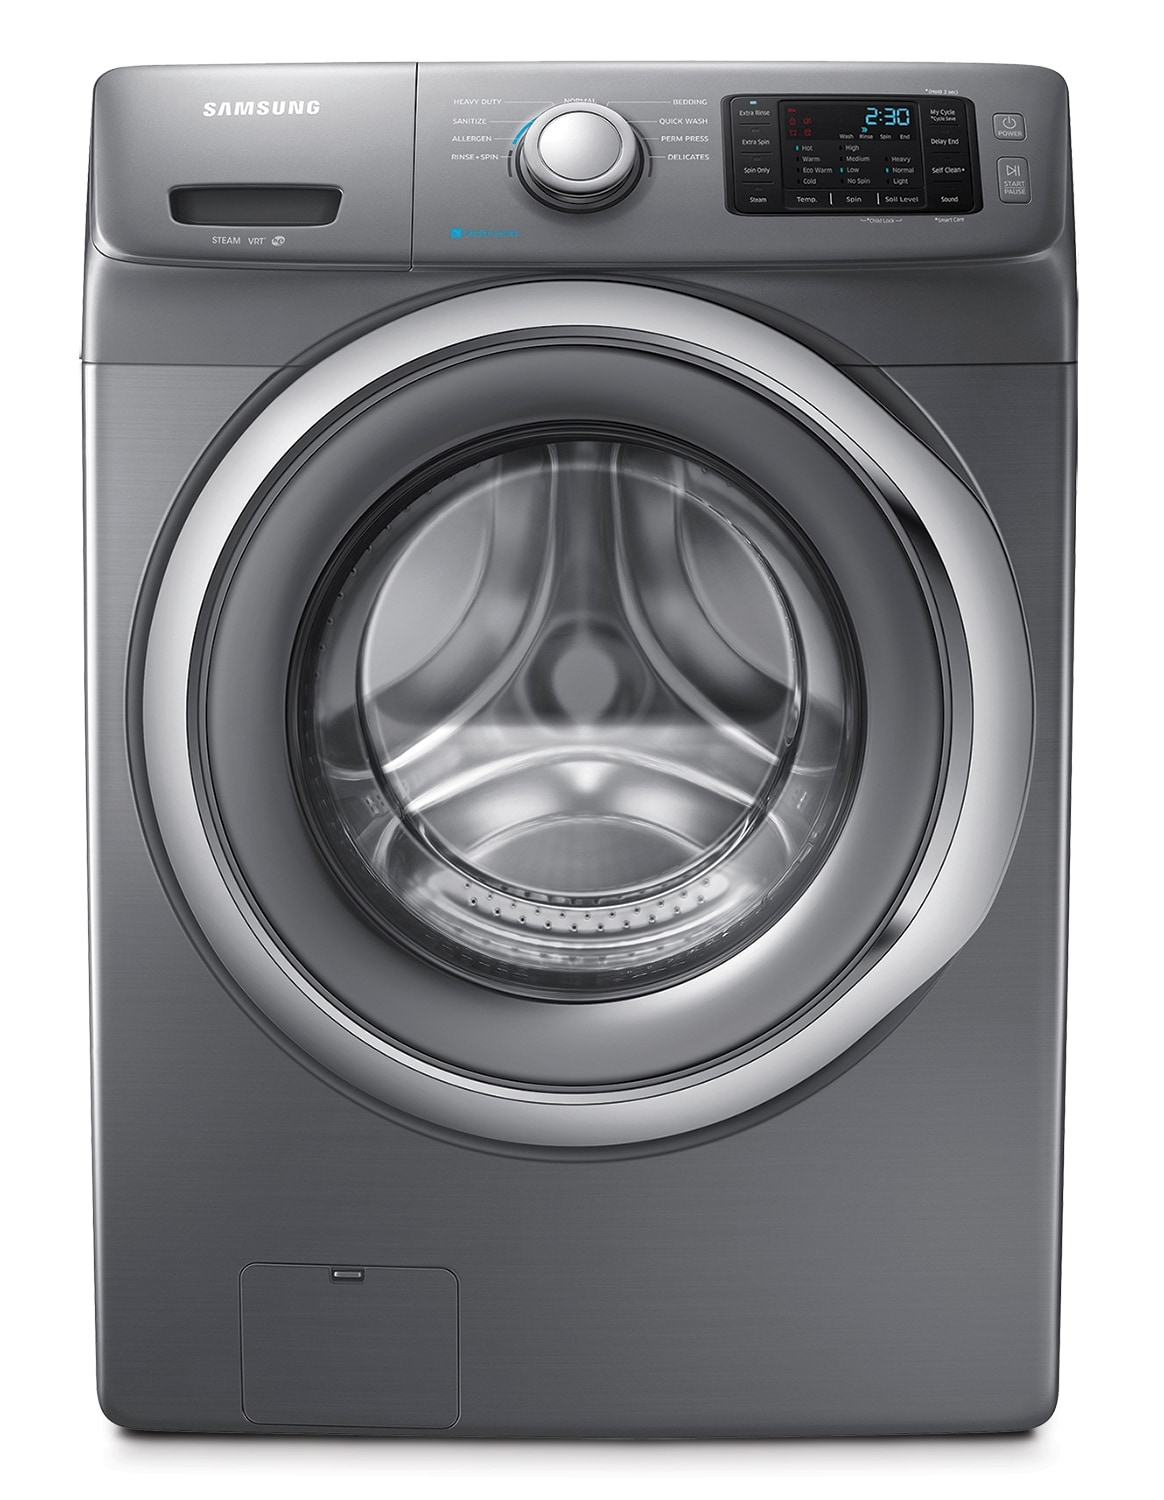 Washers and Dryers - Samsung Stainless Platinum Front Load Washer (4.8 Cu. Ft. IEC) - WF42H5200AP